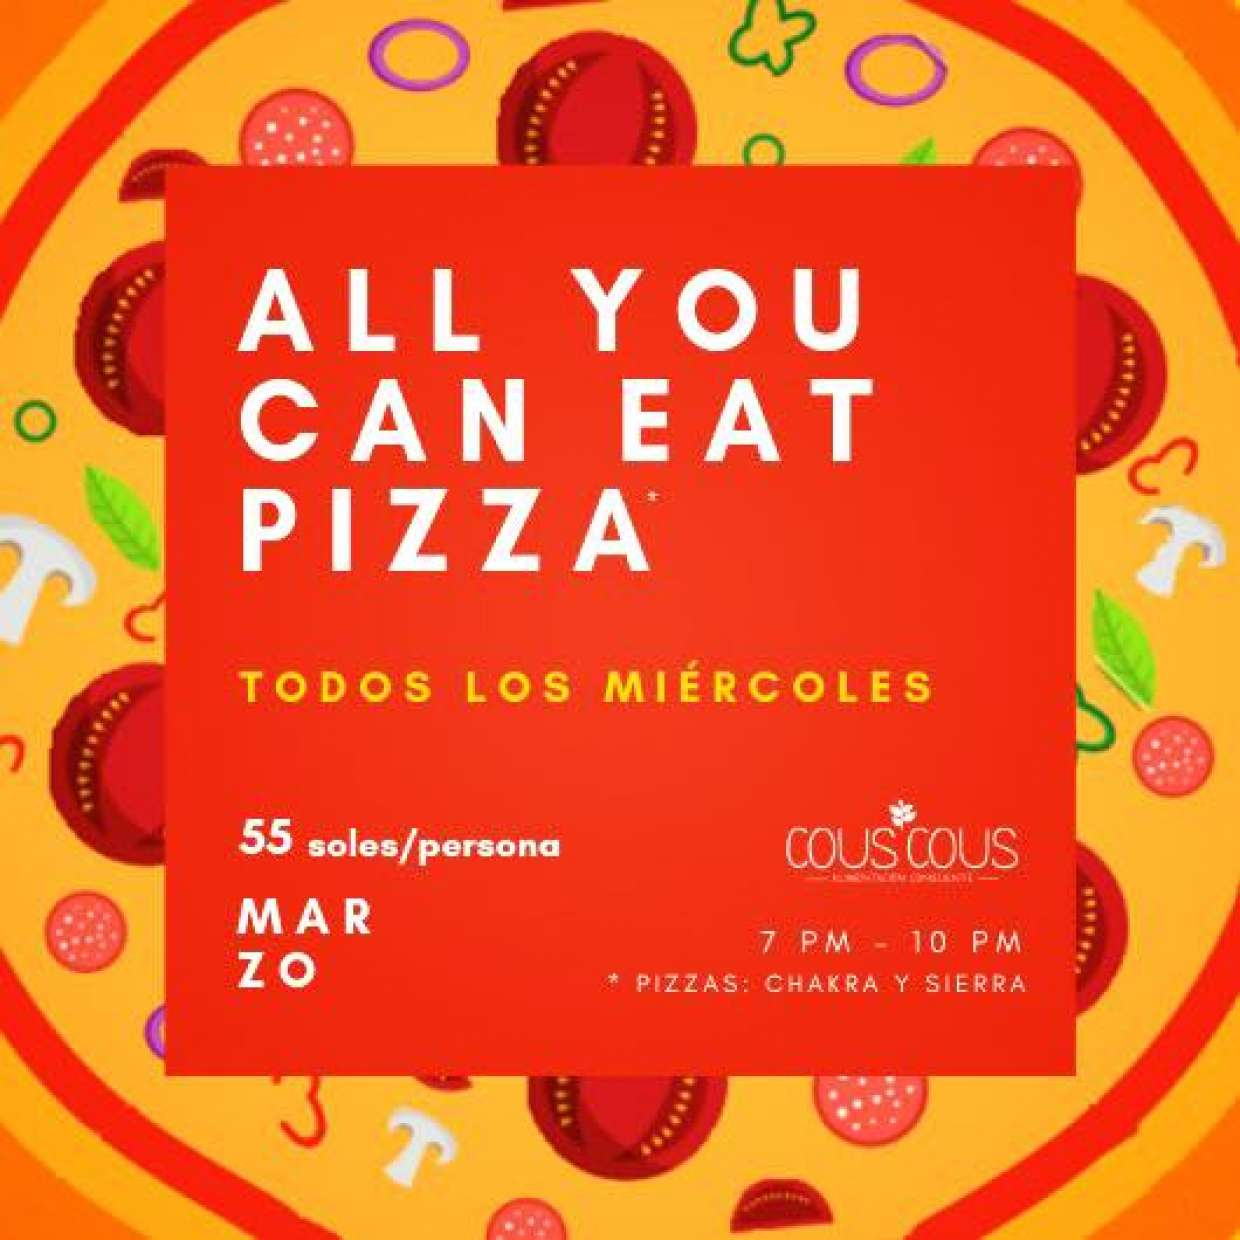 All You Can Eat Pizza